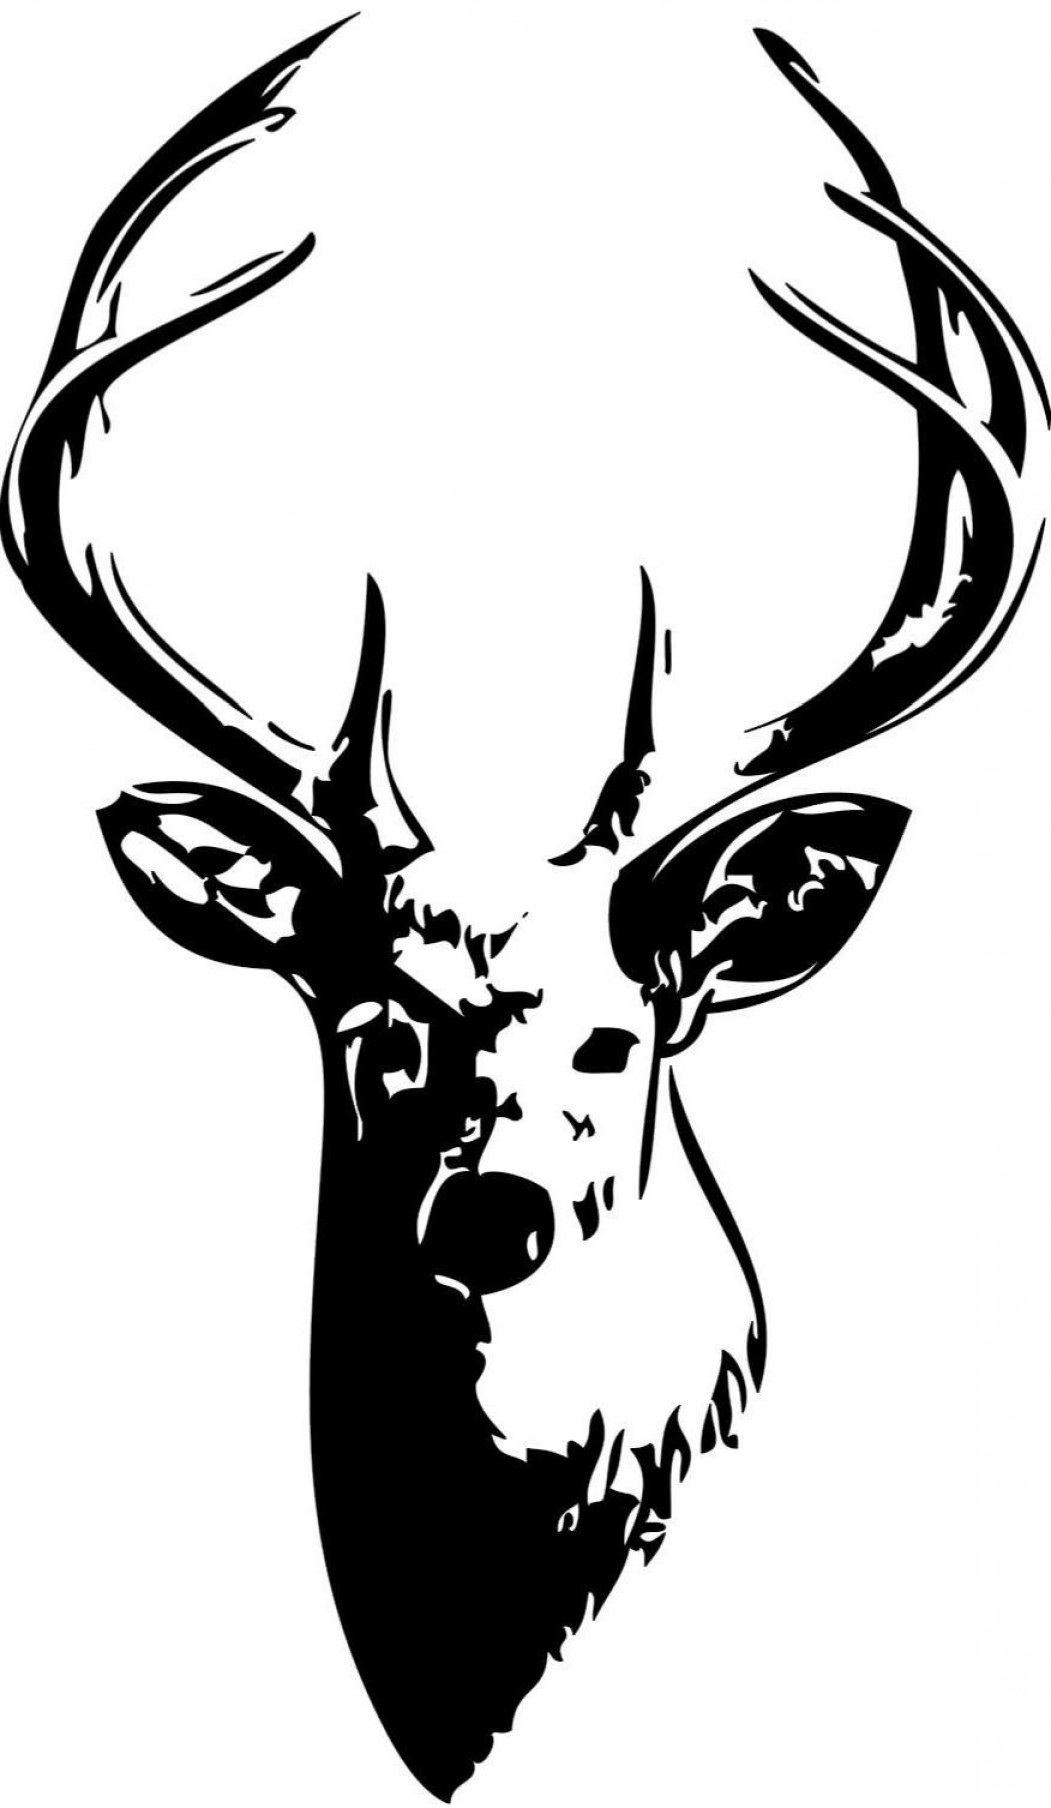 Whitetail deer outline clipart clip black and white Unique Whitetail Deer Silhouette Clip Art Vector Library ... clip black and white